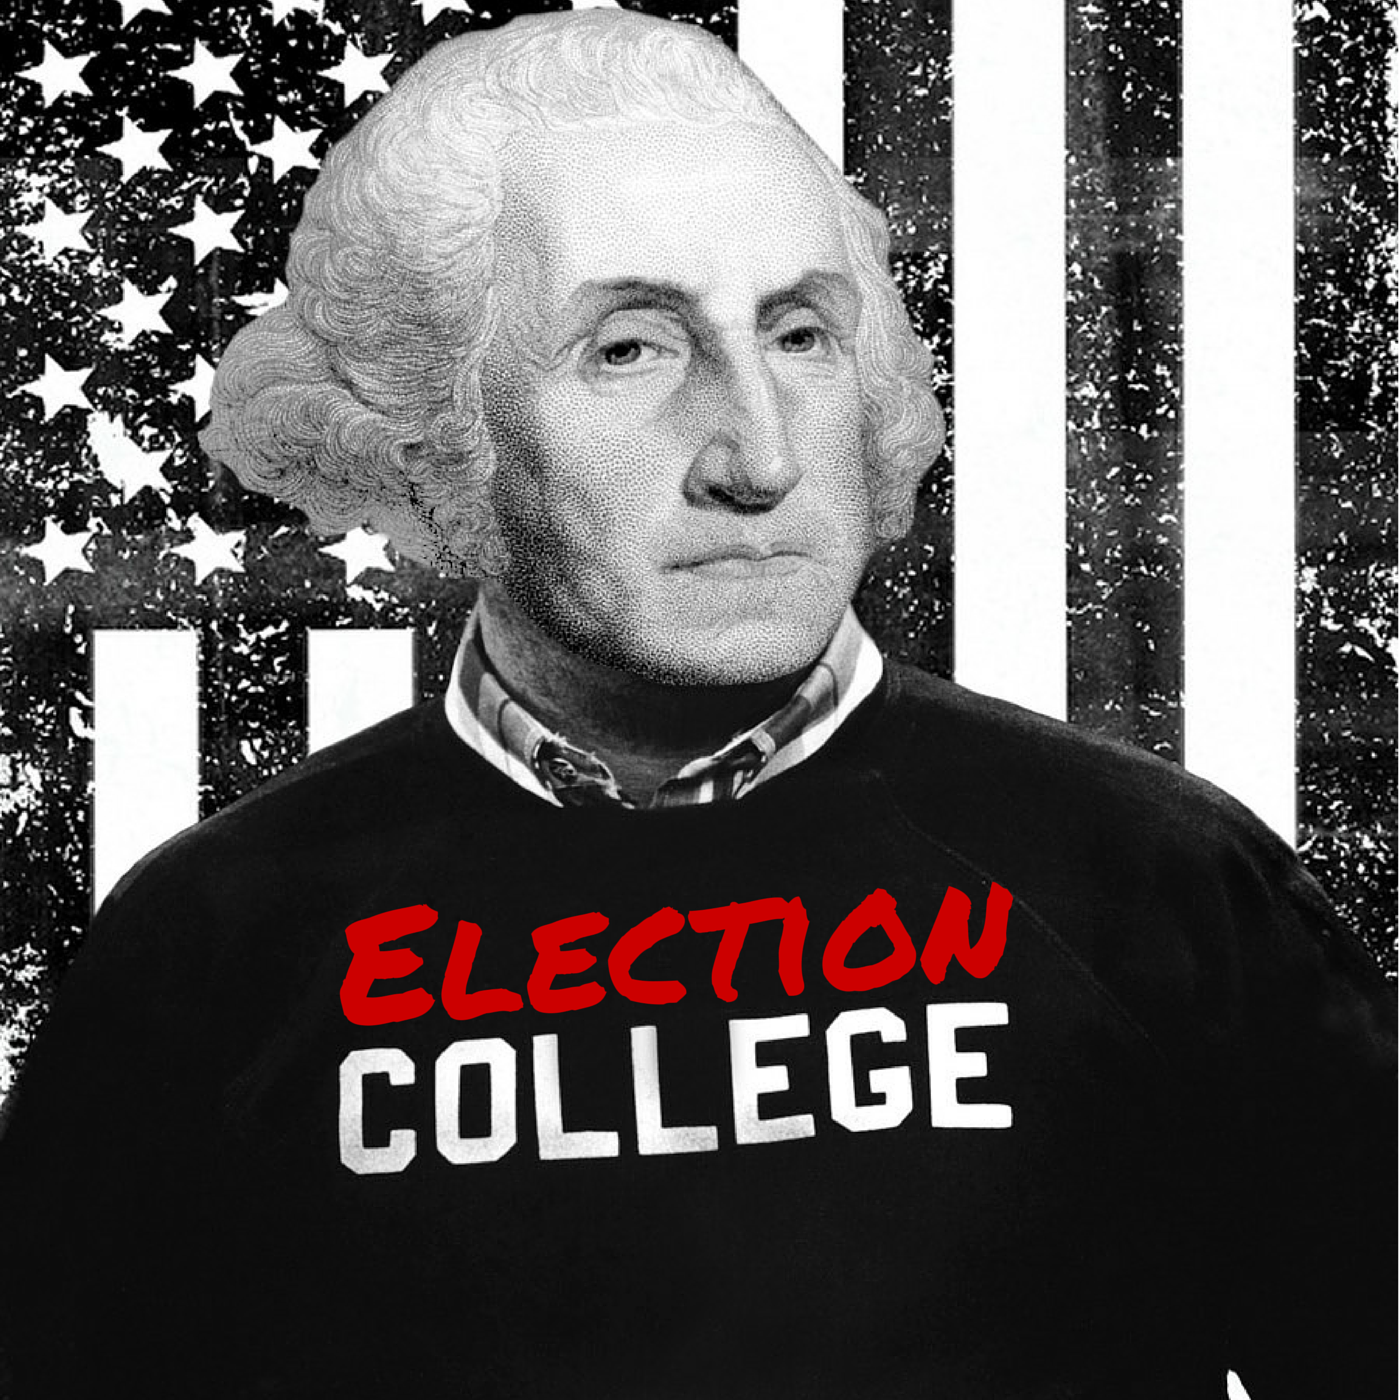 The Incumbent and a Democrat - Election of 1888 | Episode #037 | Election College: United States Presidential Election History